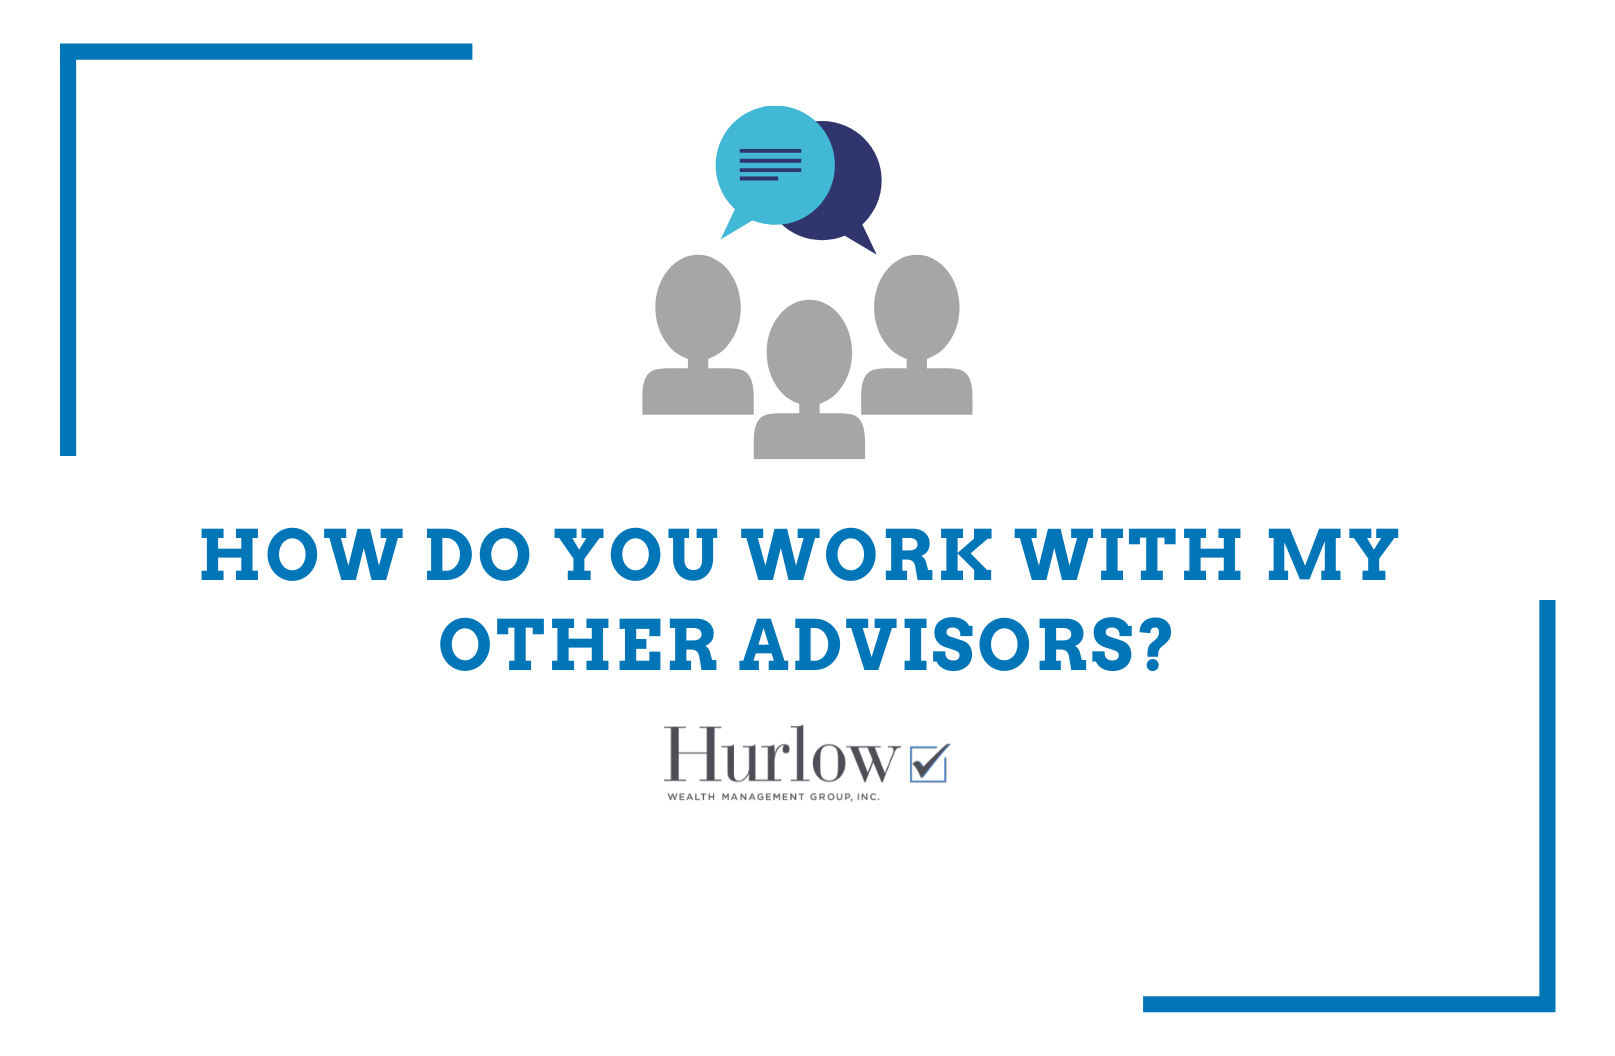 We coordinate with attorneys, accountants, insurance agents and other advisors Thumbnail